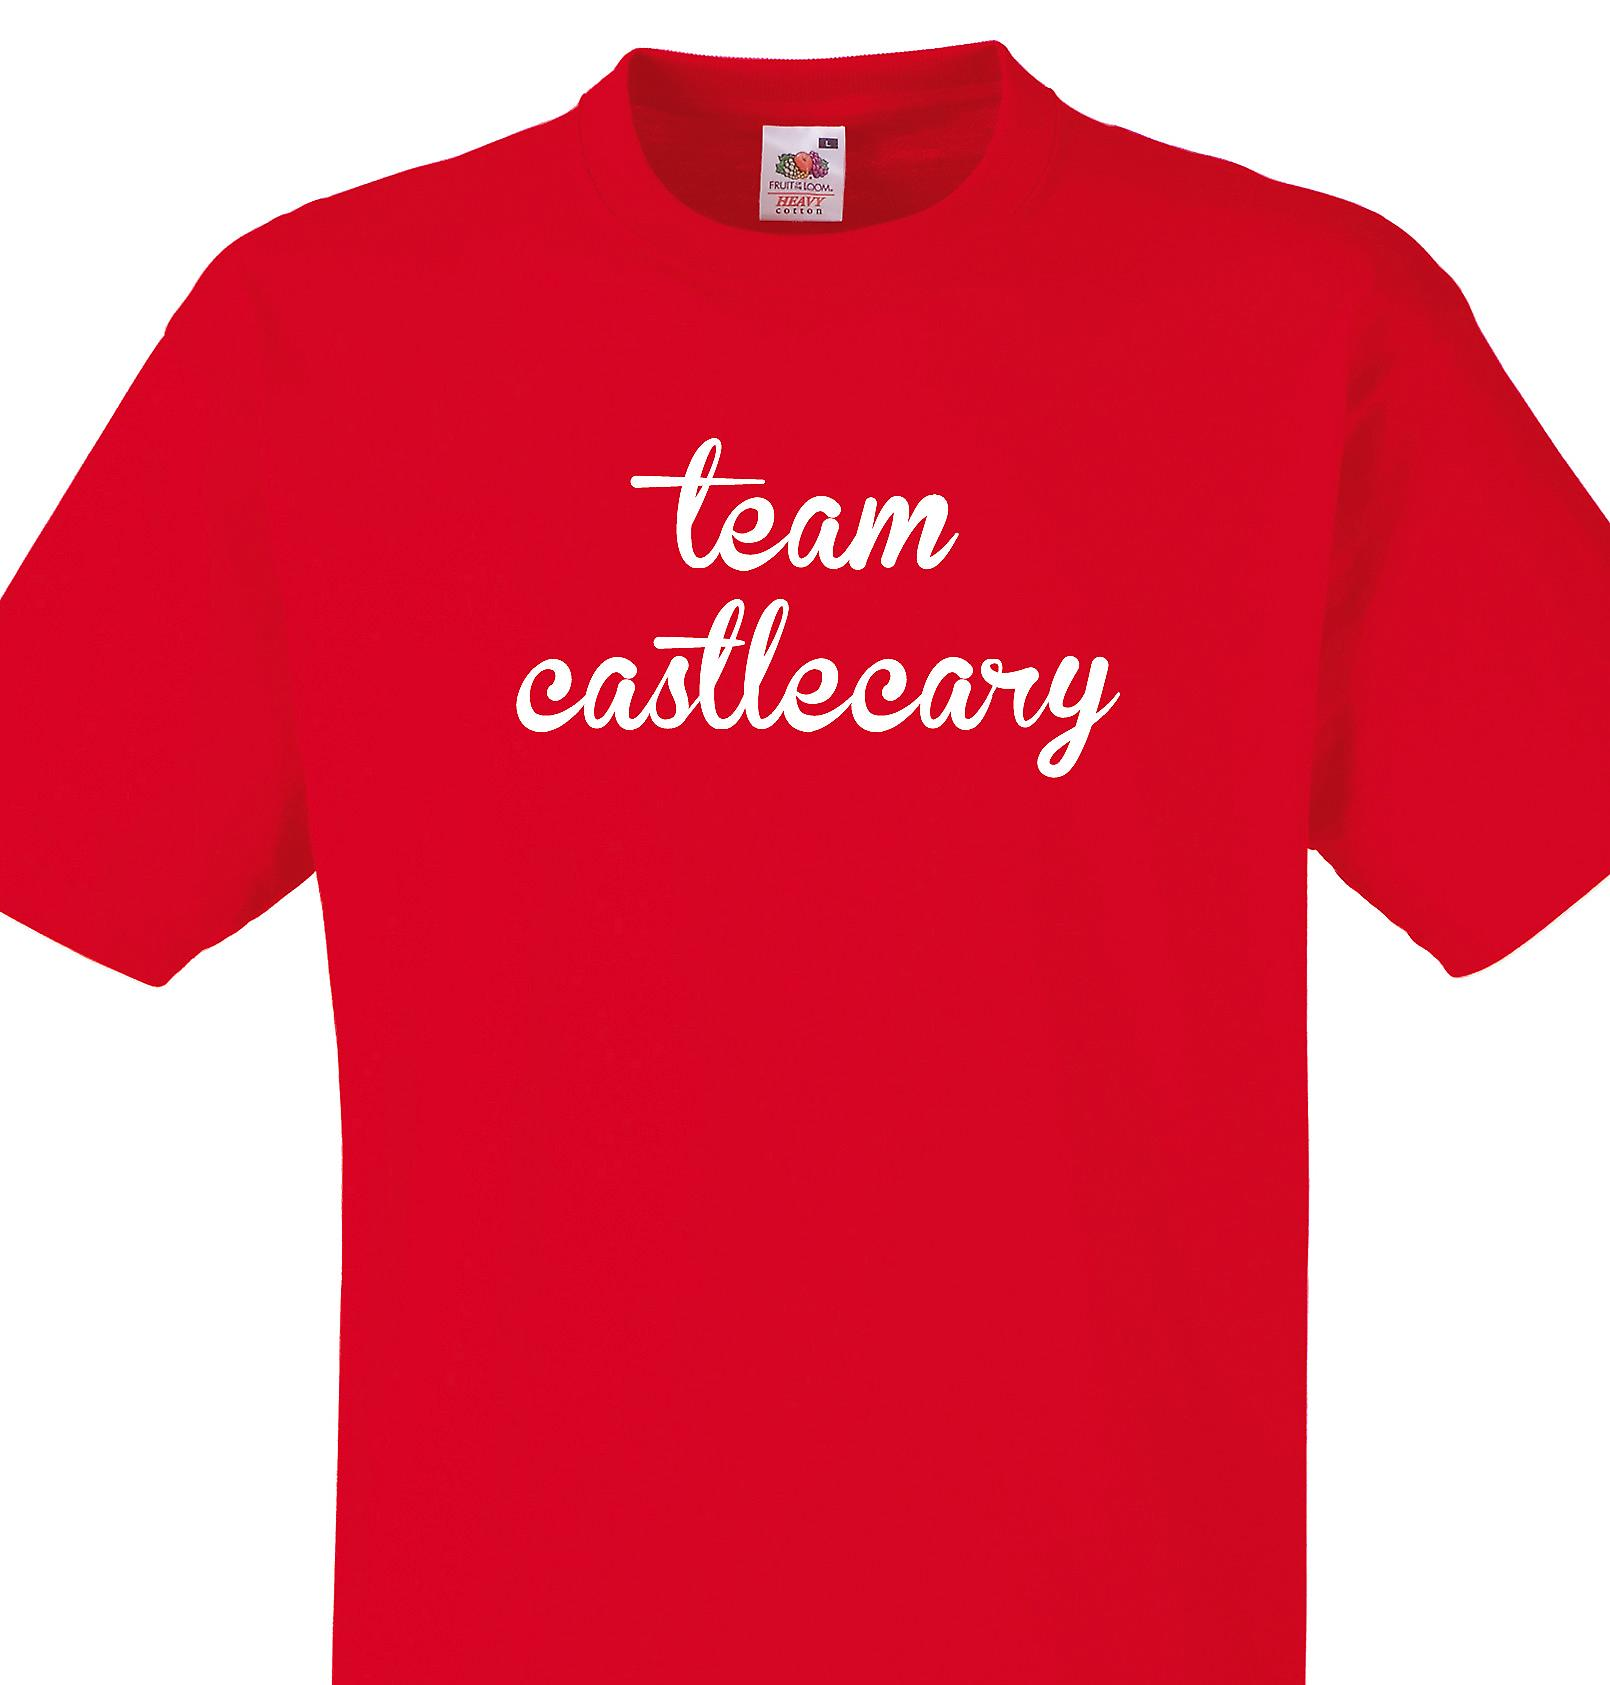 Team Castlecary Red T shirt